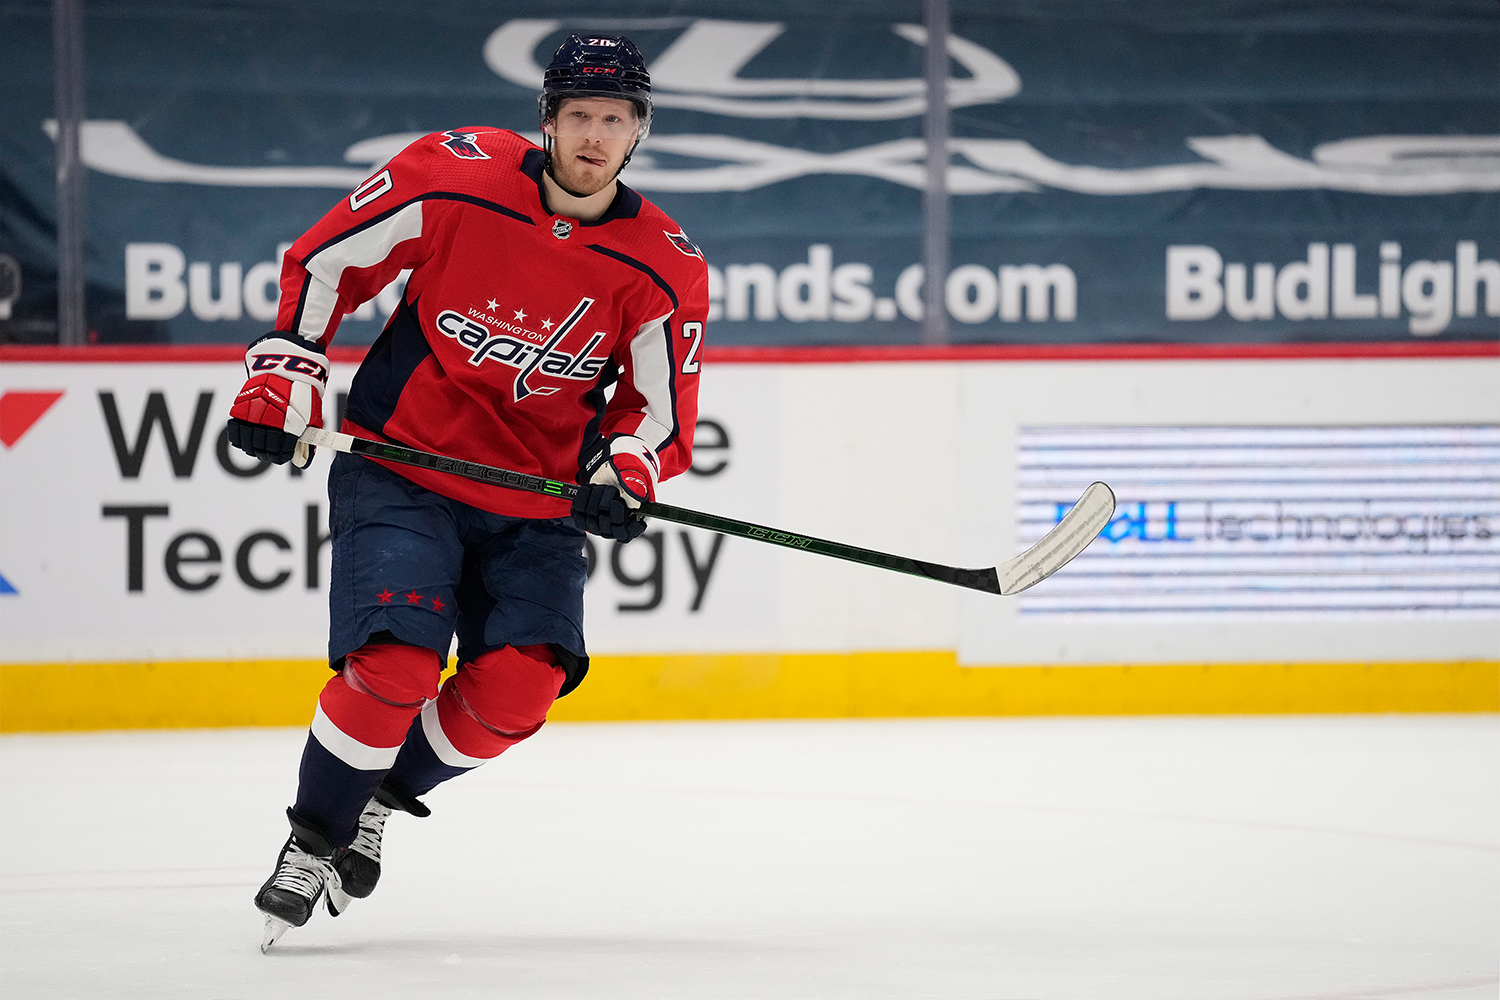 Lars Eller #20 of the Washington Capitals skates against the Philadelphia Flyers in the second period at Capital One Arena on April 13, 2021